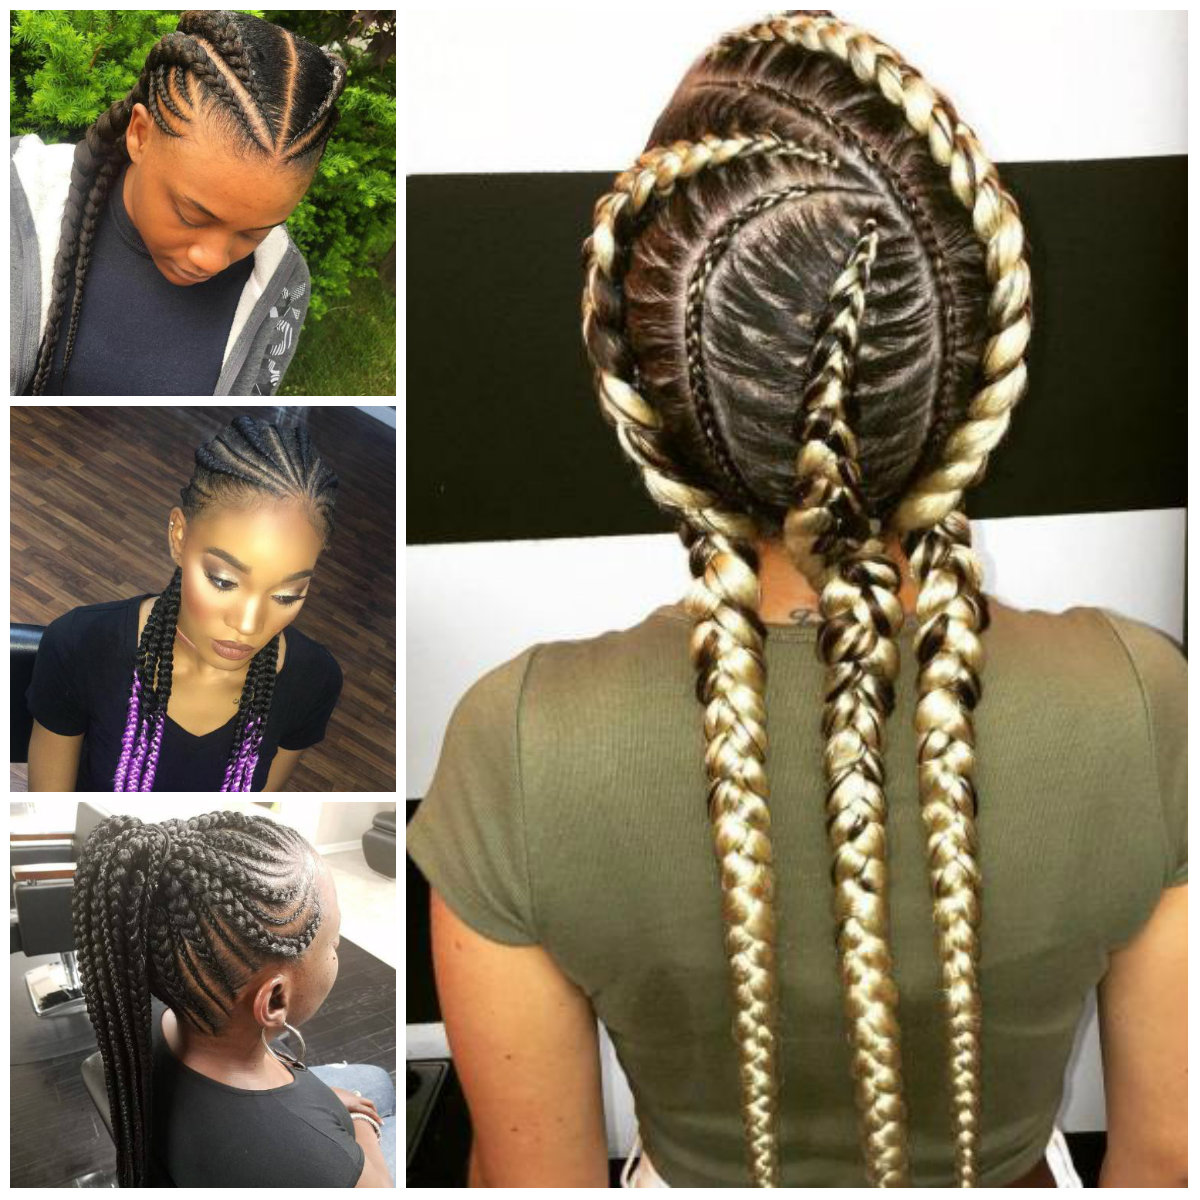 Chic Ghana Braids for 2017